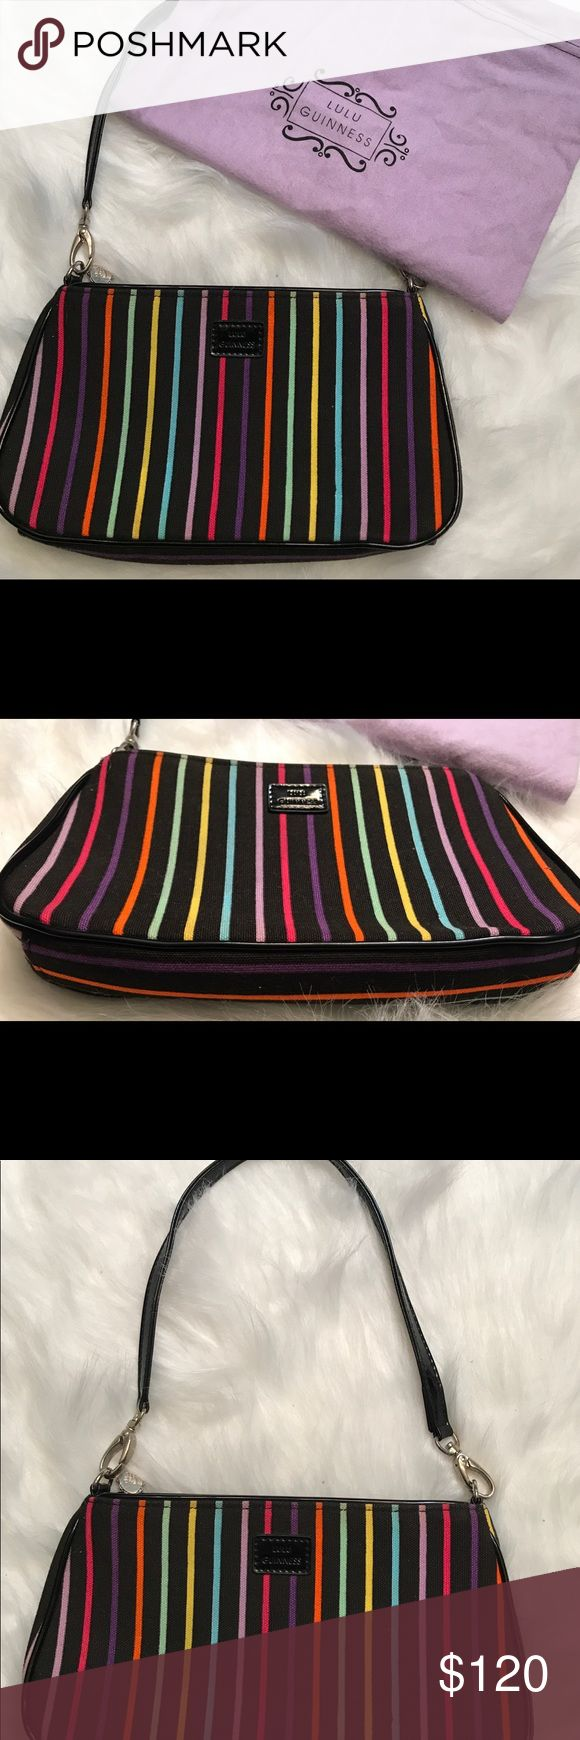 Lulu Guinness Multicolor Striped Shoulder Bag Collectible Lulu Guinness New w dustbag Retails 350 Lulu Guinness Bags Shoulder Bags